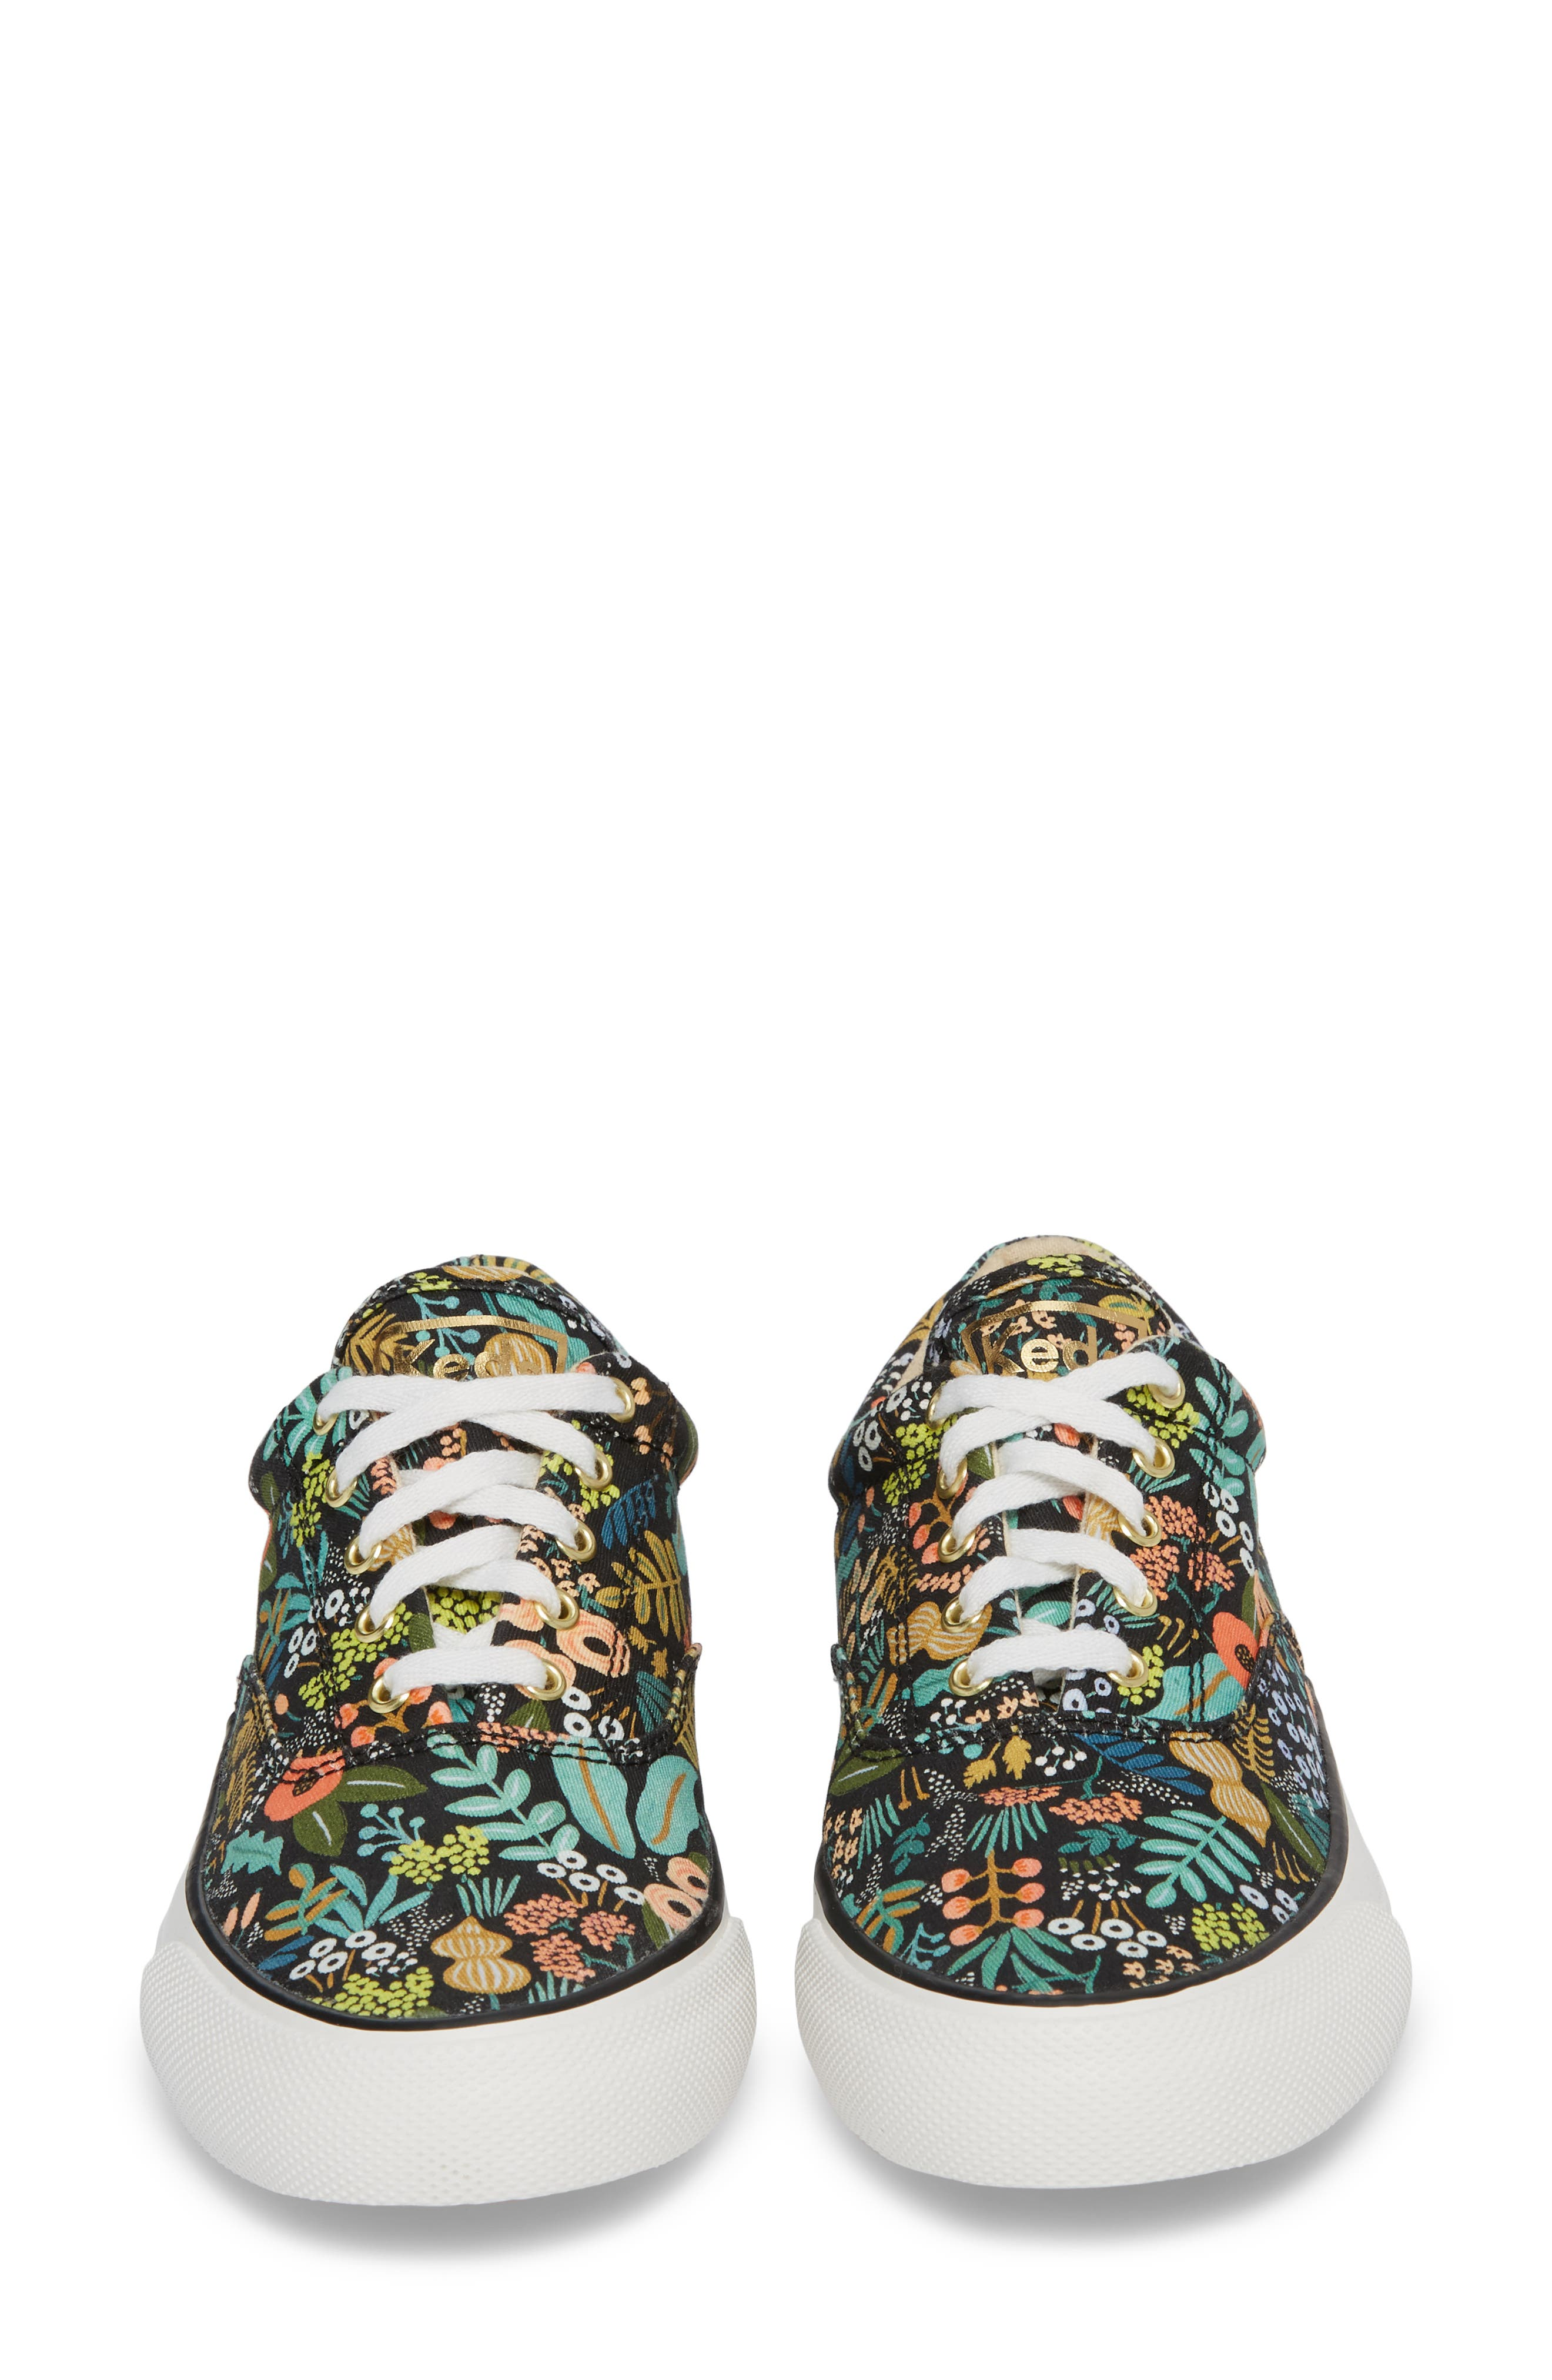 x Rifle Paper Co. Anchor Lively Floral Slip-On Sneaker,                             Alternate thumbnail 5, color,                             BLACK